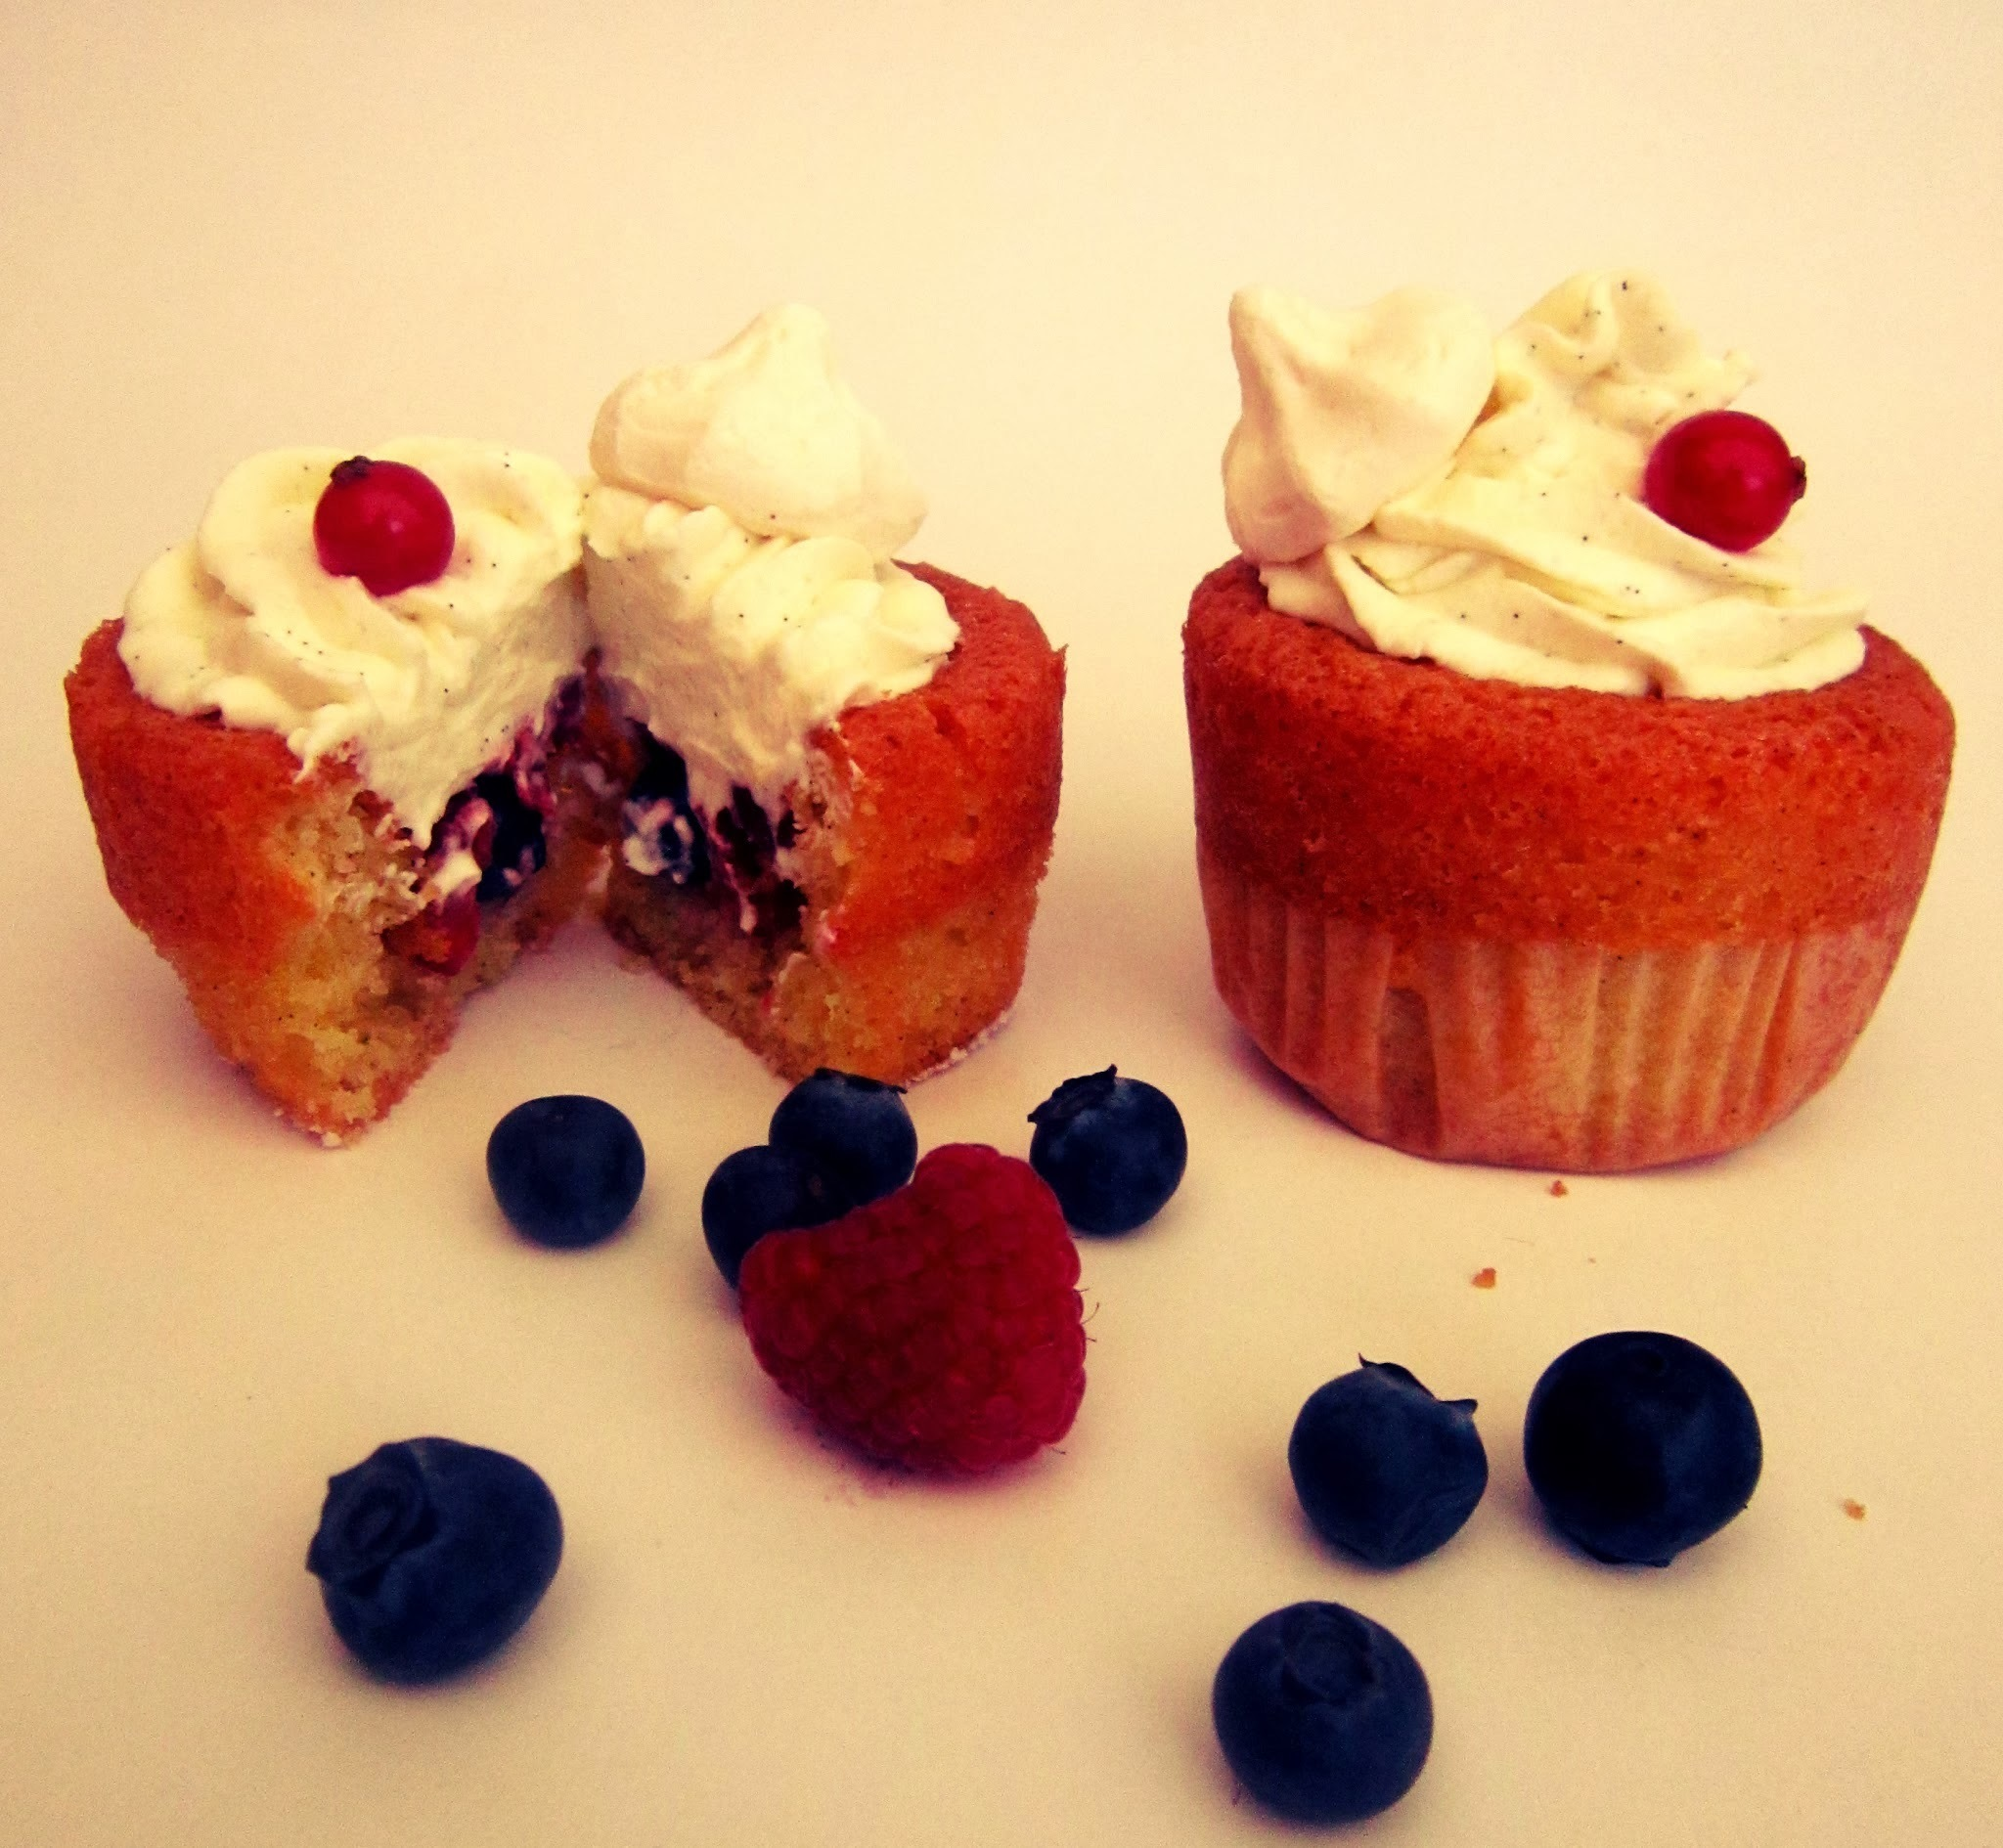 Cupcakes fruits rouges/vanille au cream cheese